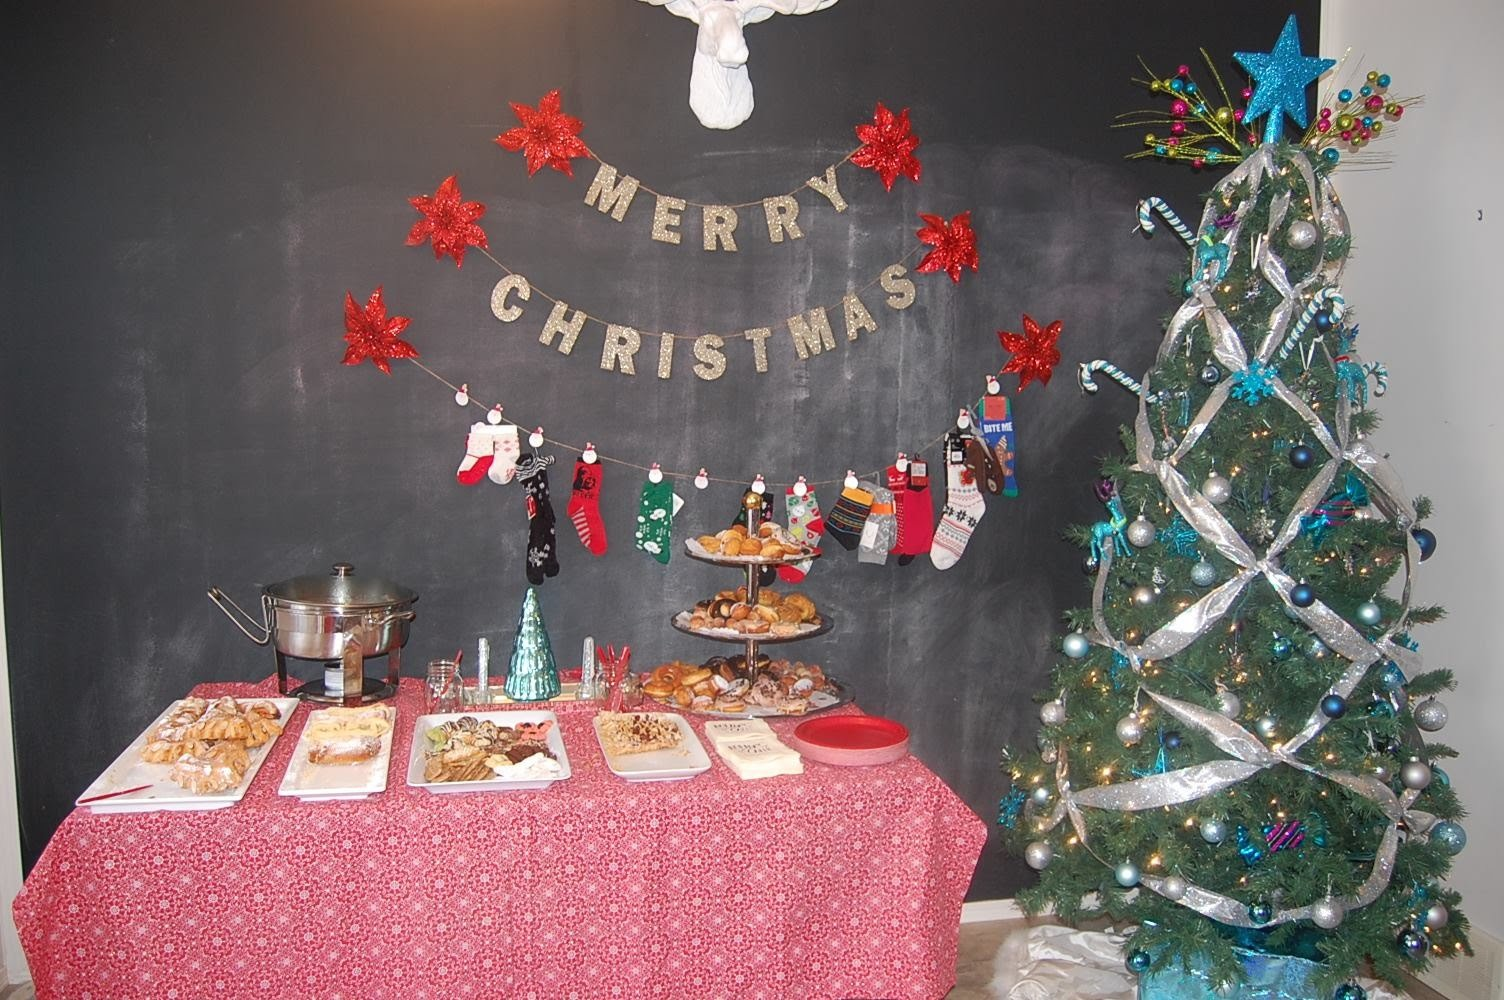 How To: Plan an AMAZING Christmas Party